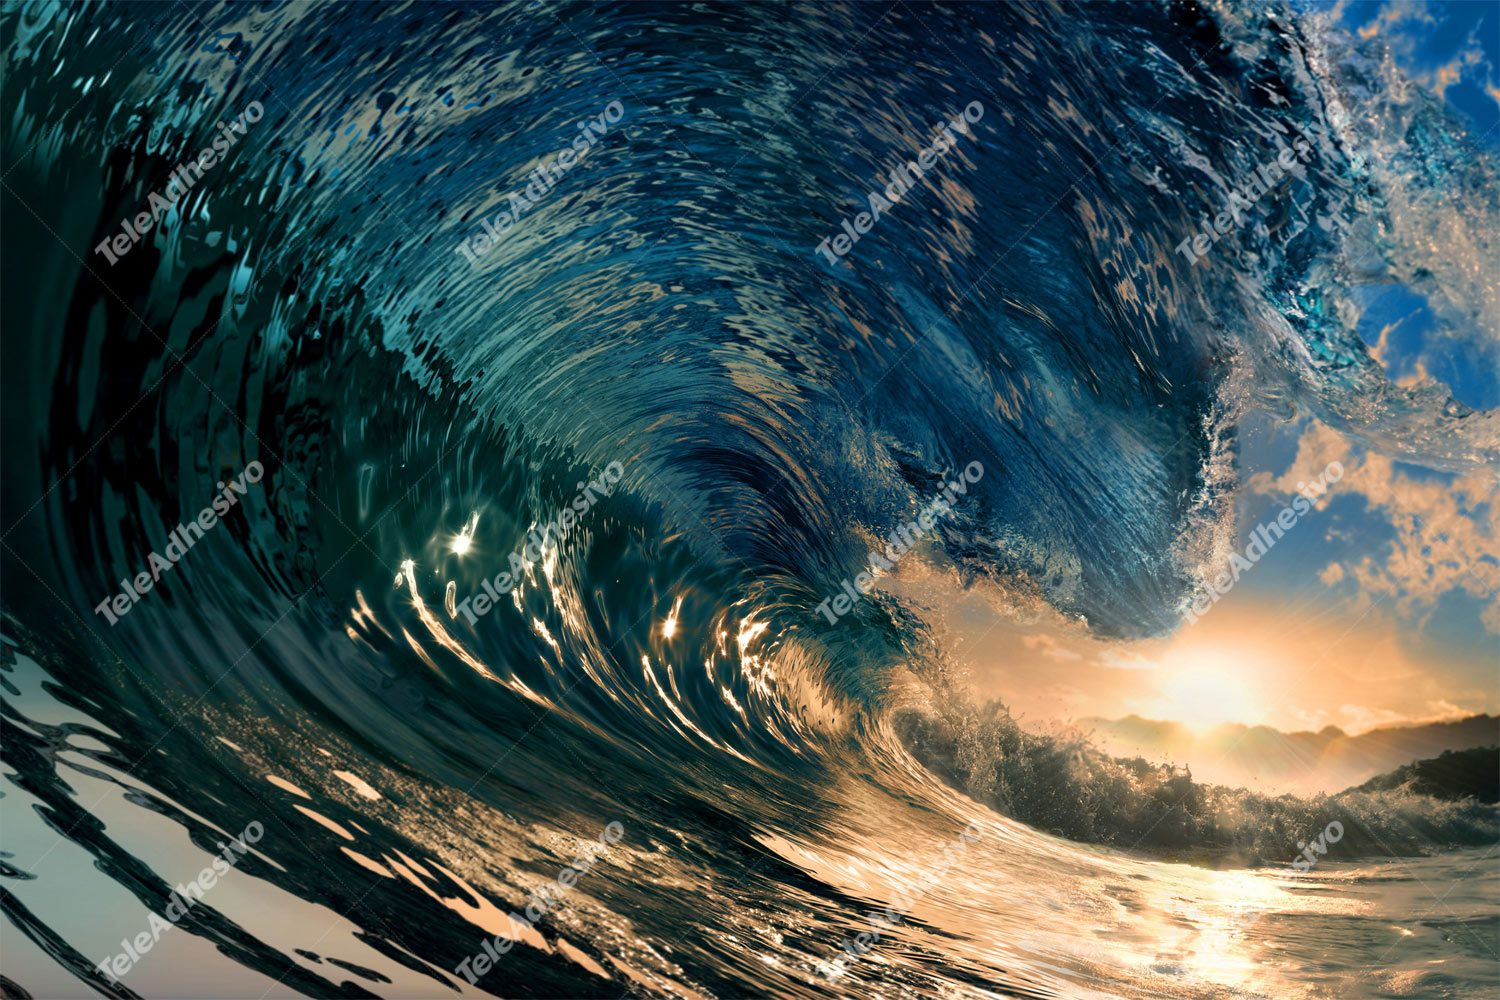 Wall Murals: Under the wave